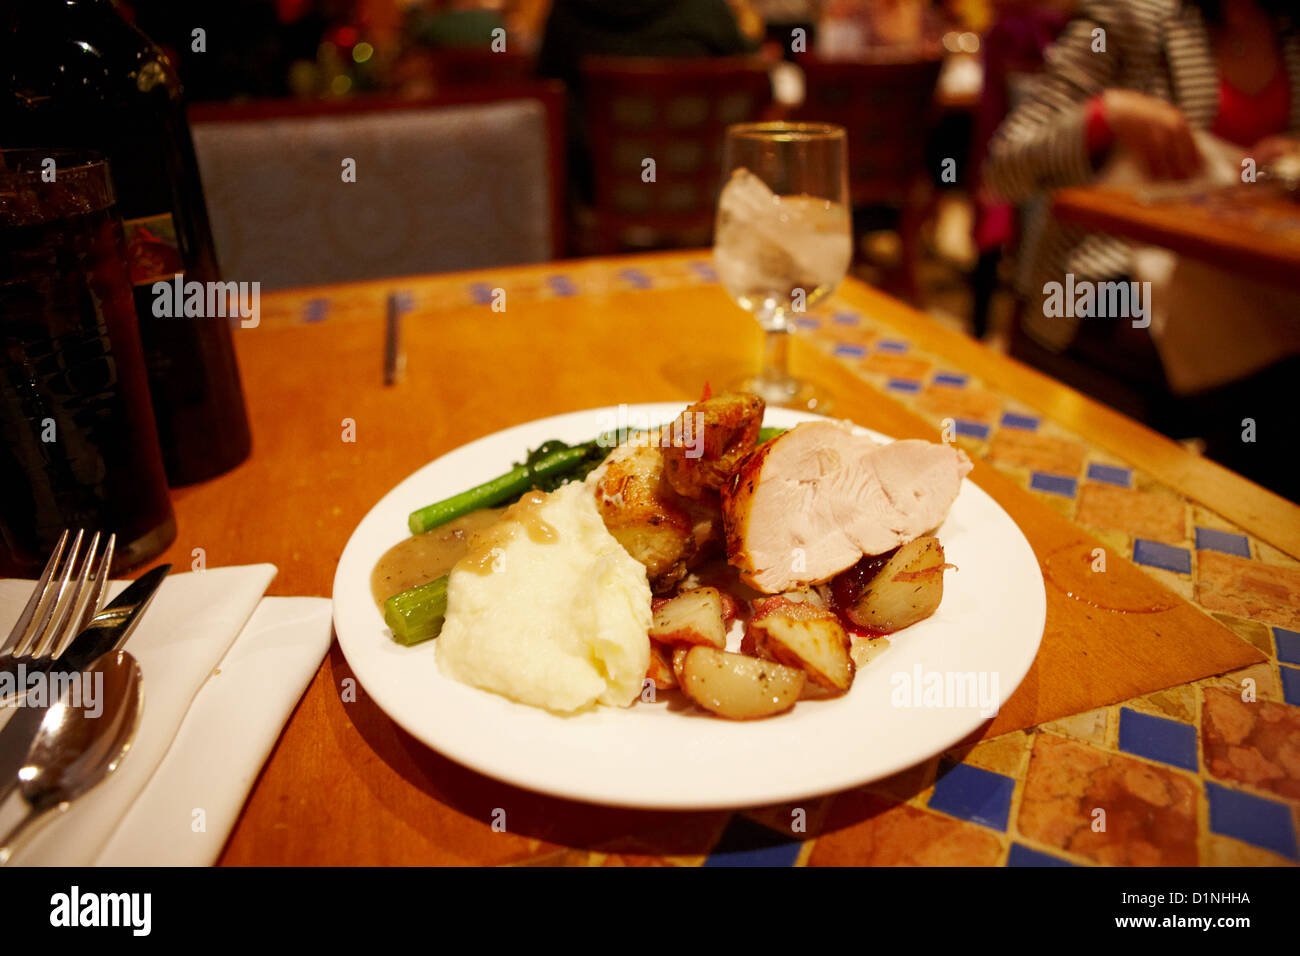 Pleasing Plate Of Food From The Buffet At The Bellagio Hotel And Download Free Architecture Designs Intelgarnamadebymaigaardcom